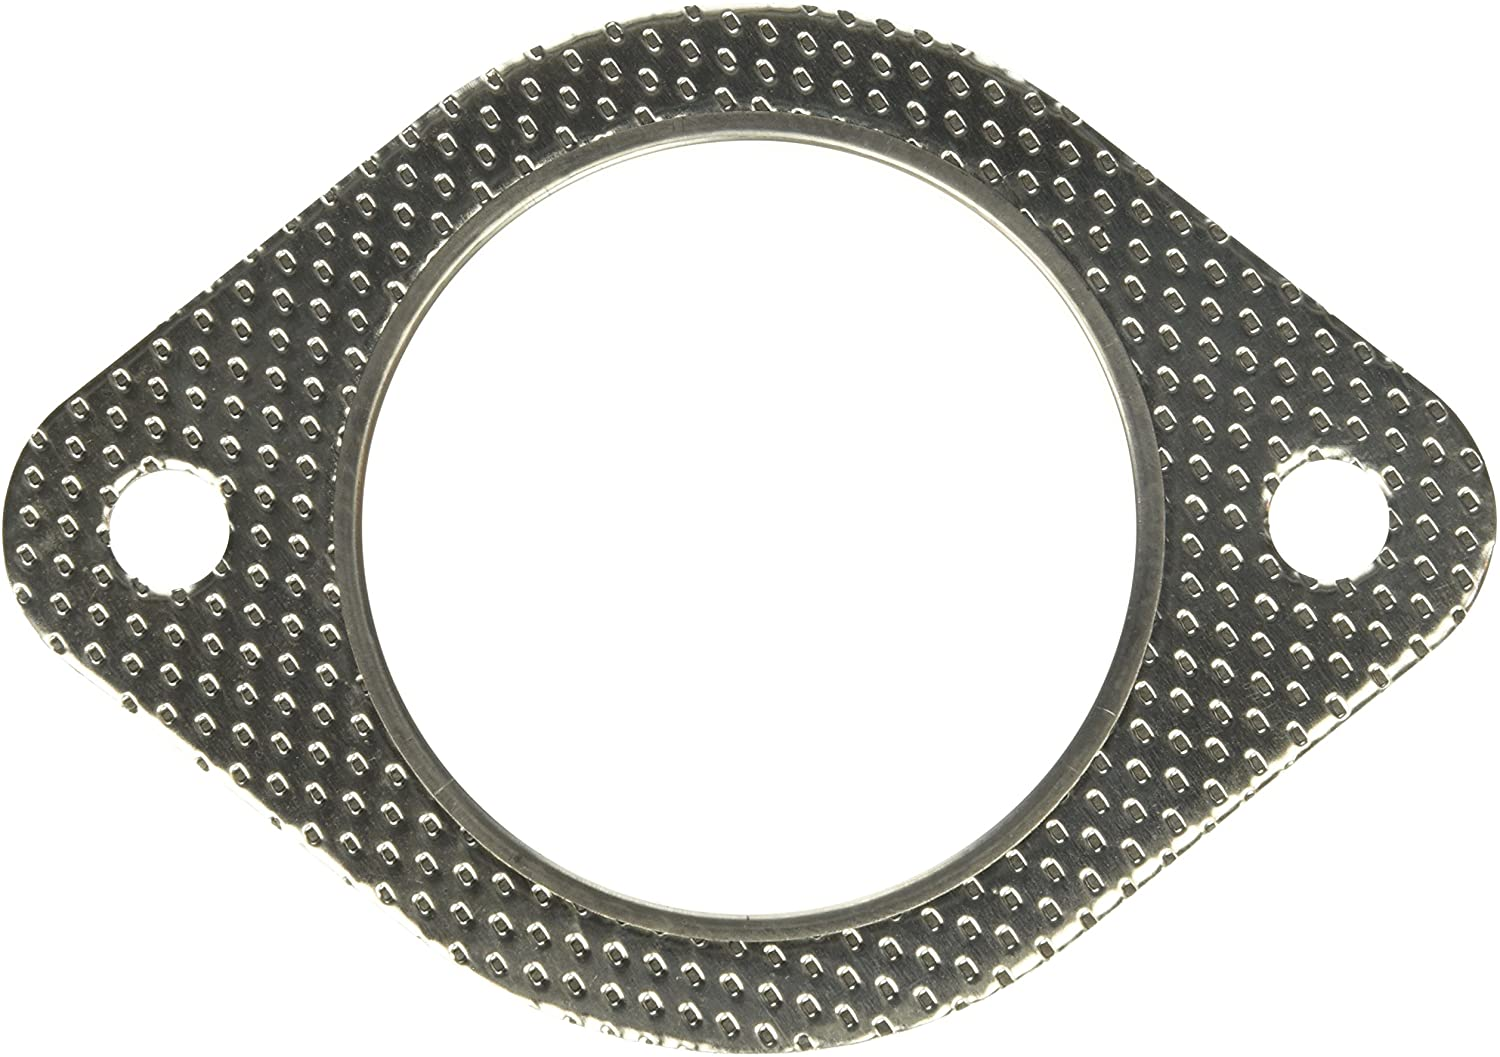 MAHLE F32258 Exhaust Pipe Flange Gasket